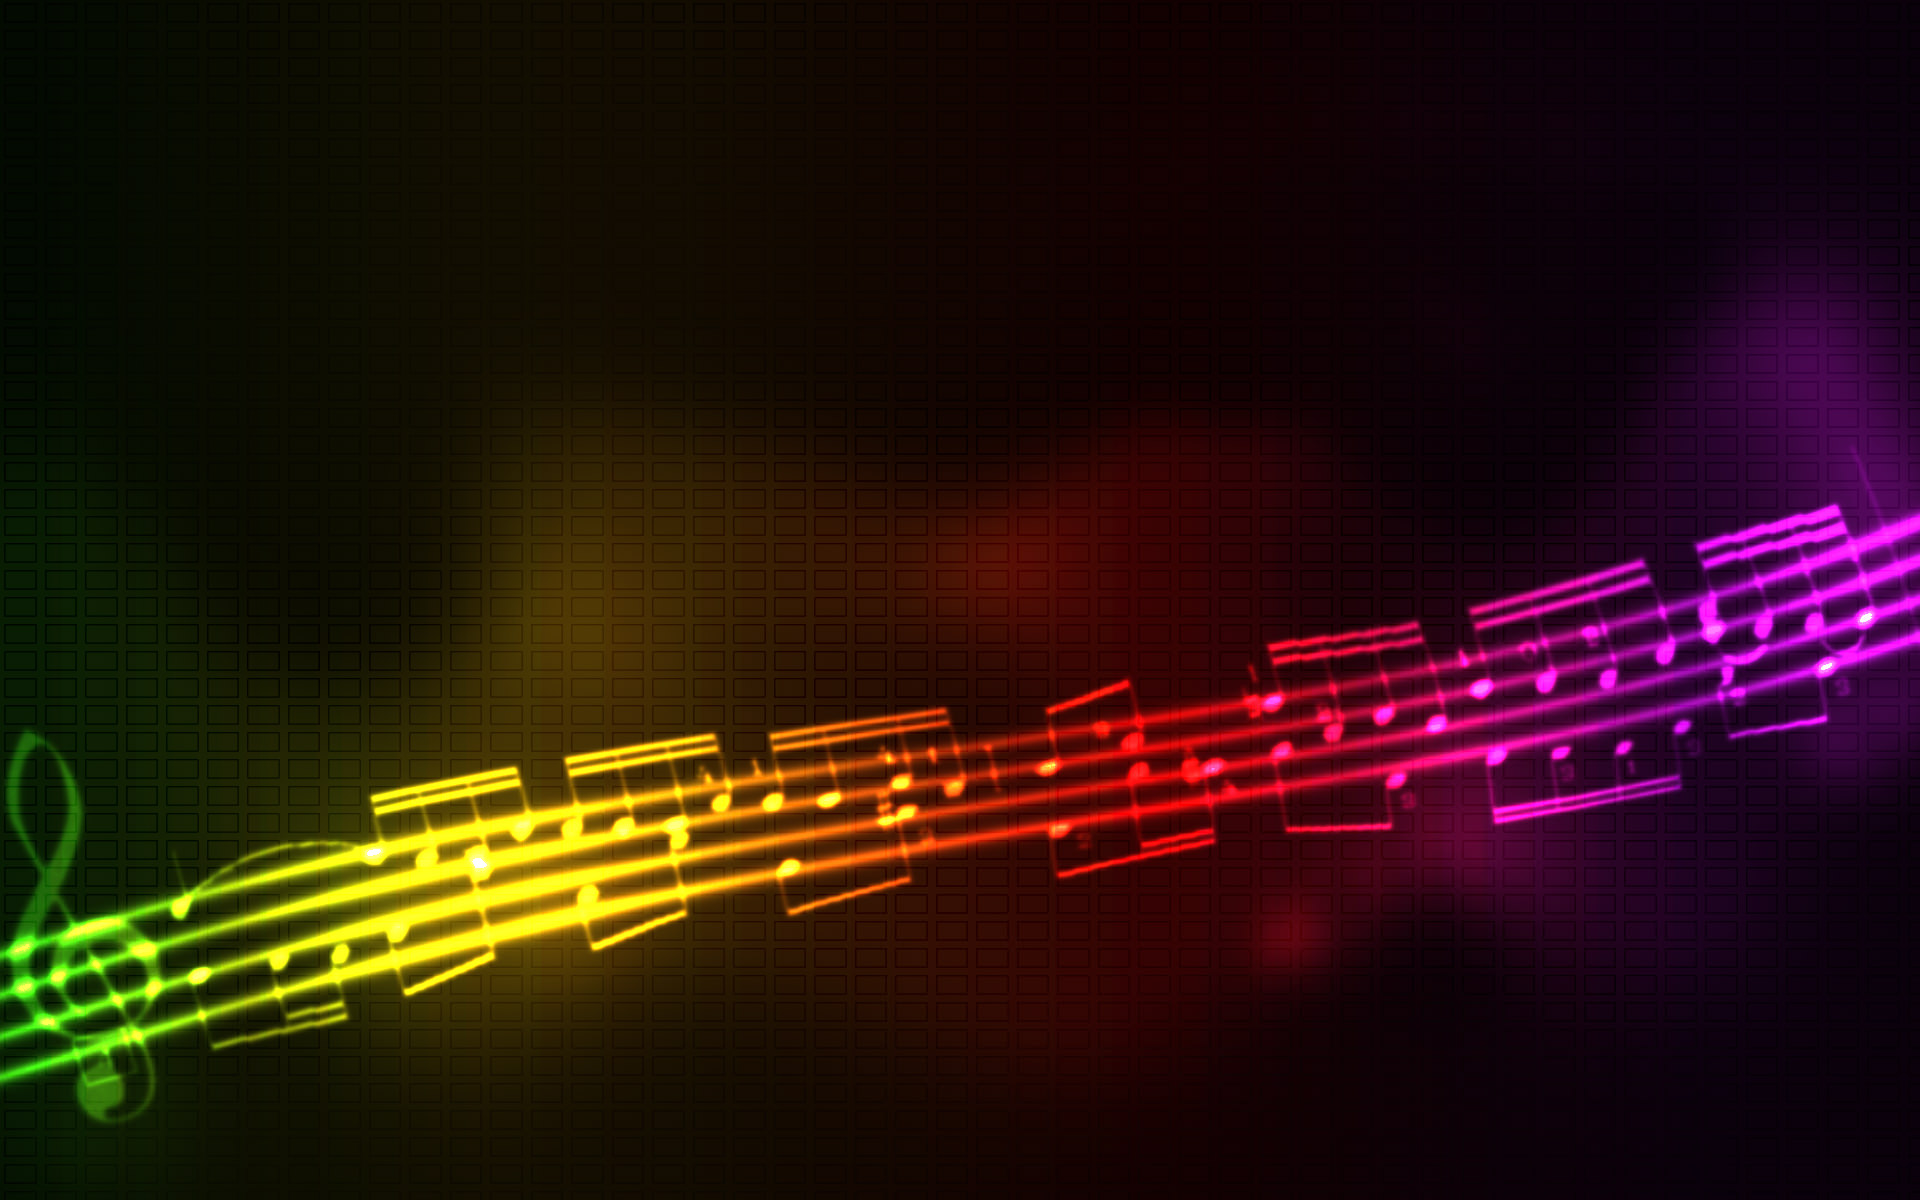 Music Wallpaper - Abstract Desktop Wallpaper